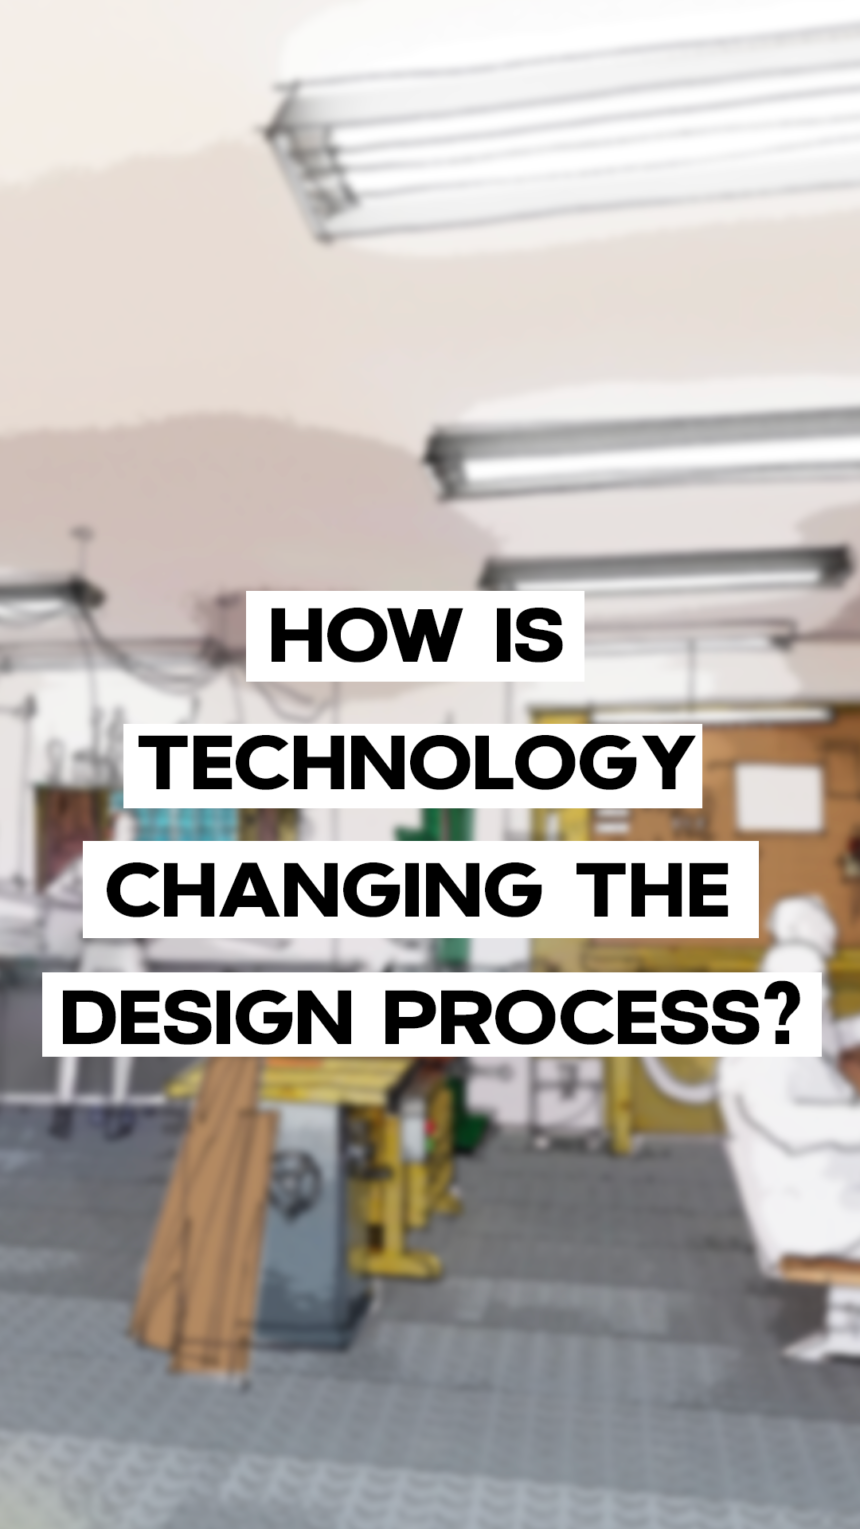 How is technology changing the design process?